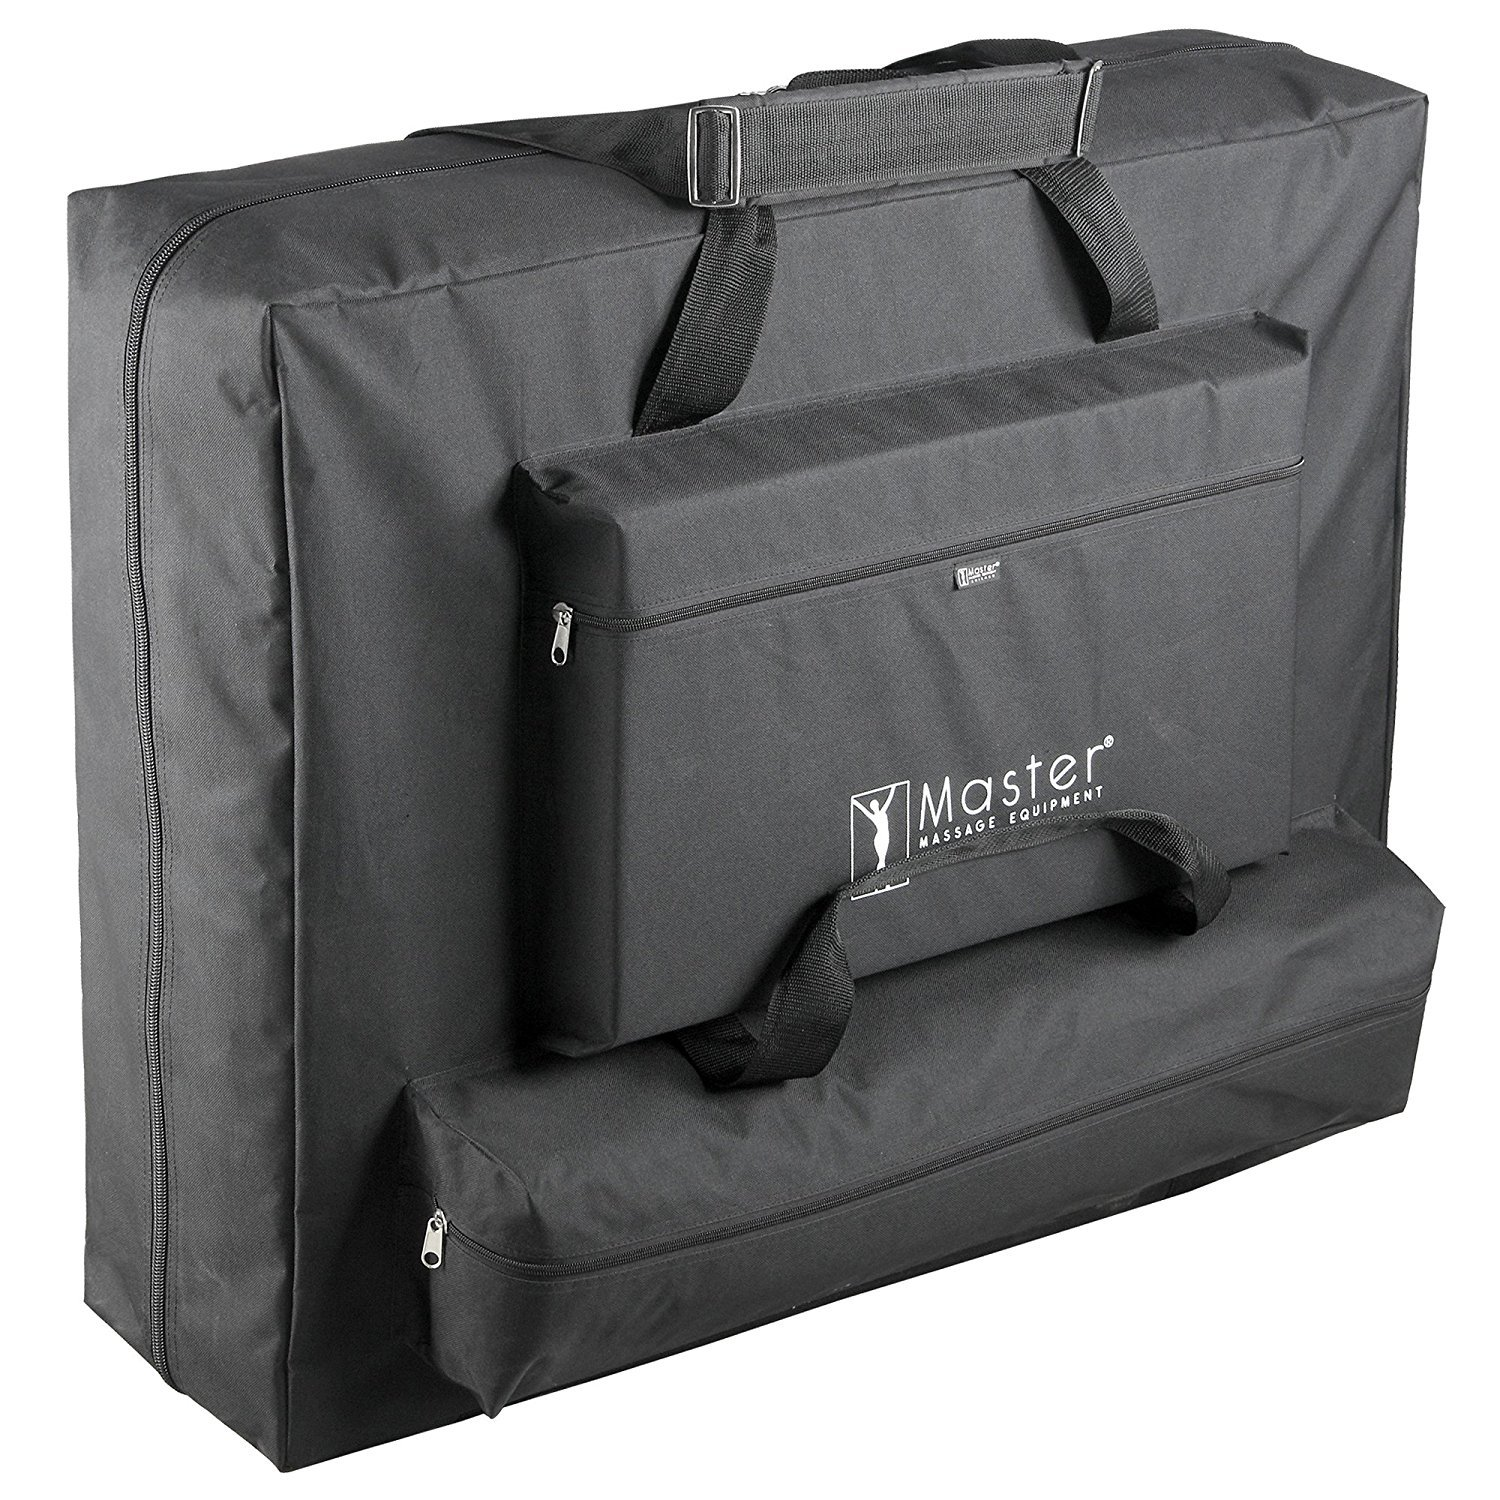 Master Massage 31'' Santana Therma Top Portable Massage Table Package (Built in Heating Pads) by Master Massage (Image #8)